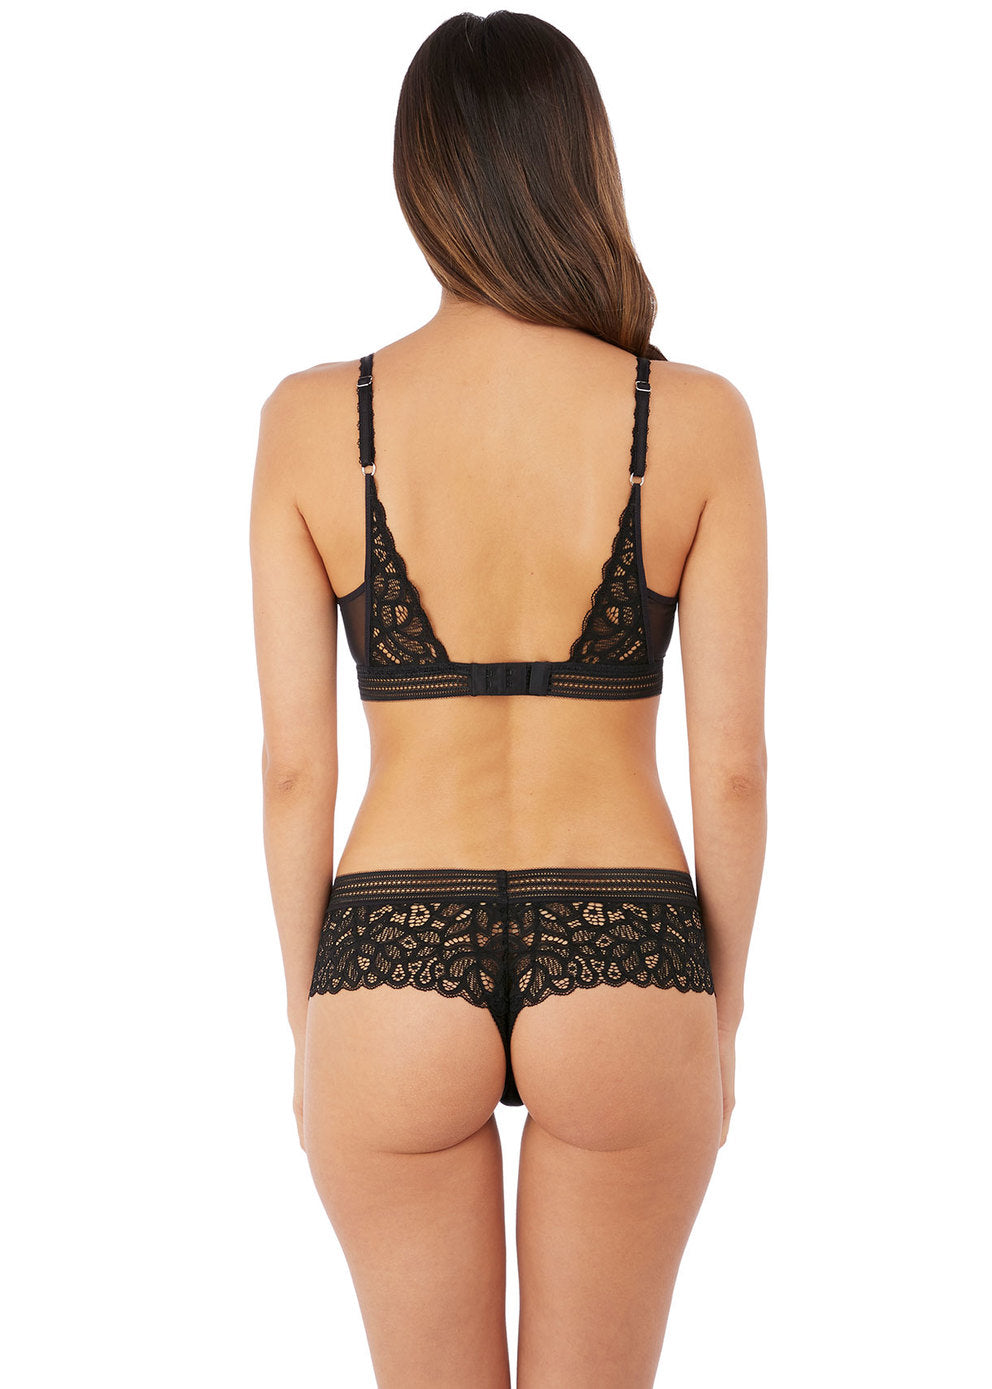 WE148007BLK Raffine Tanga |BLACK|